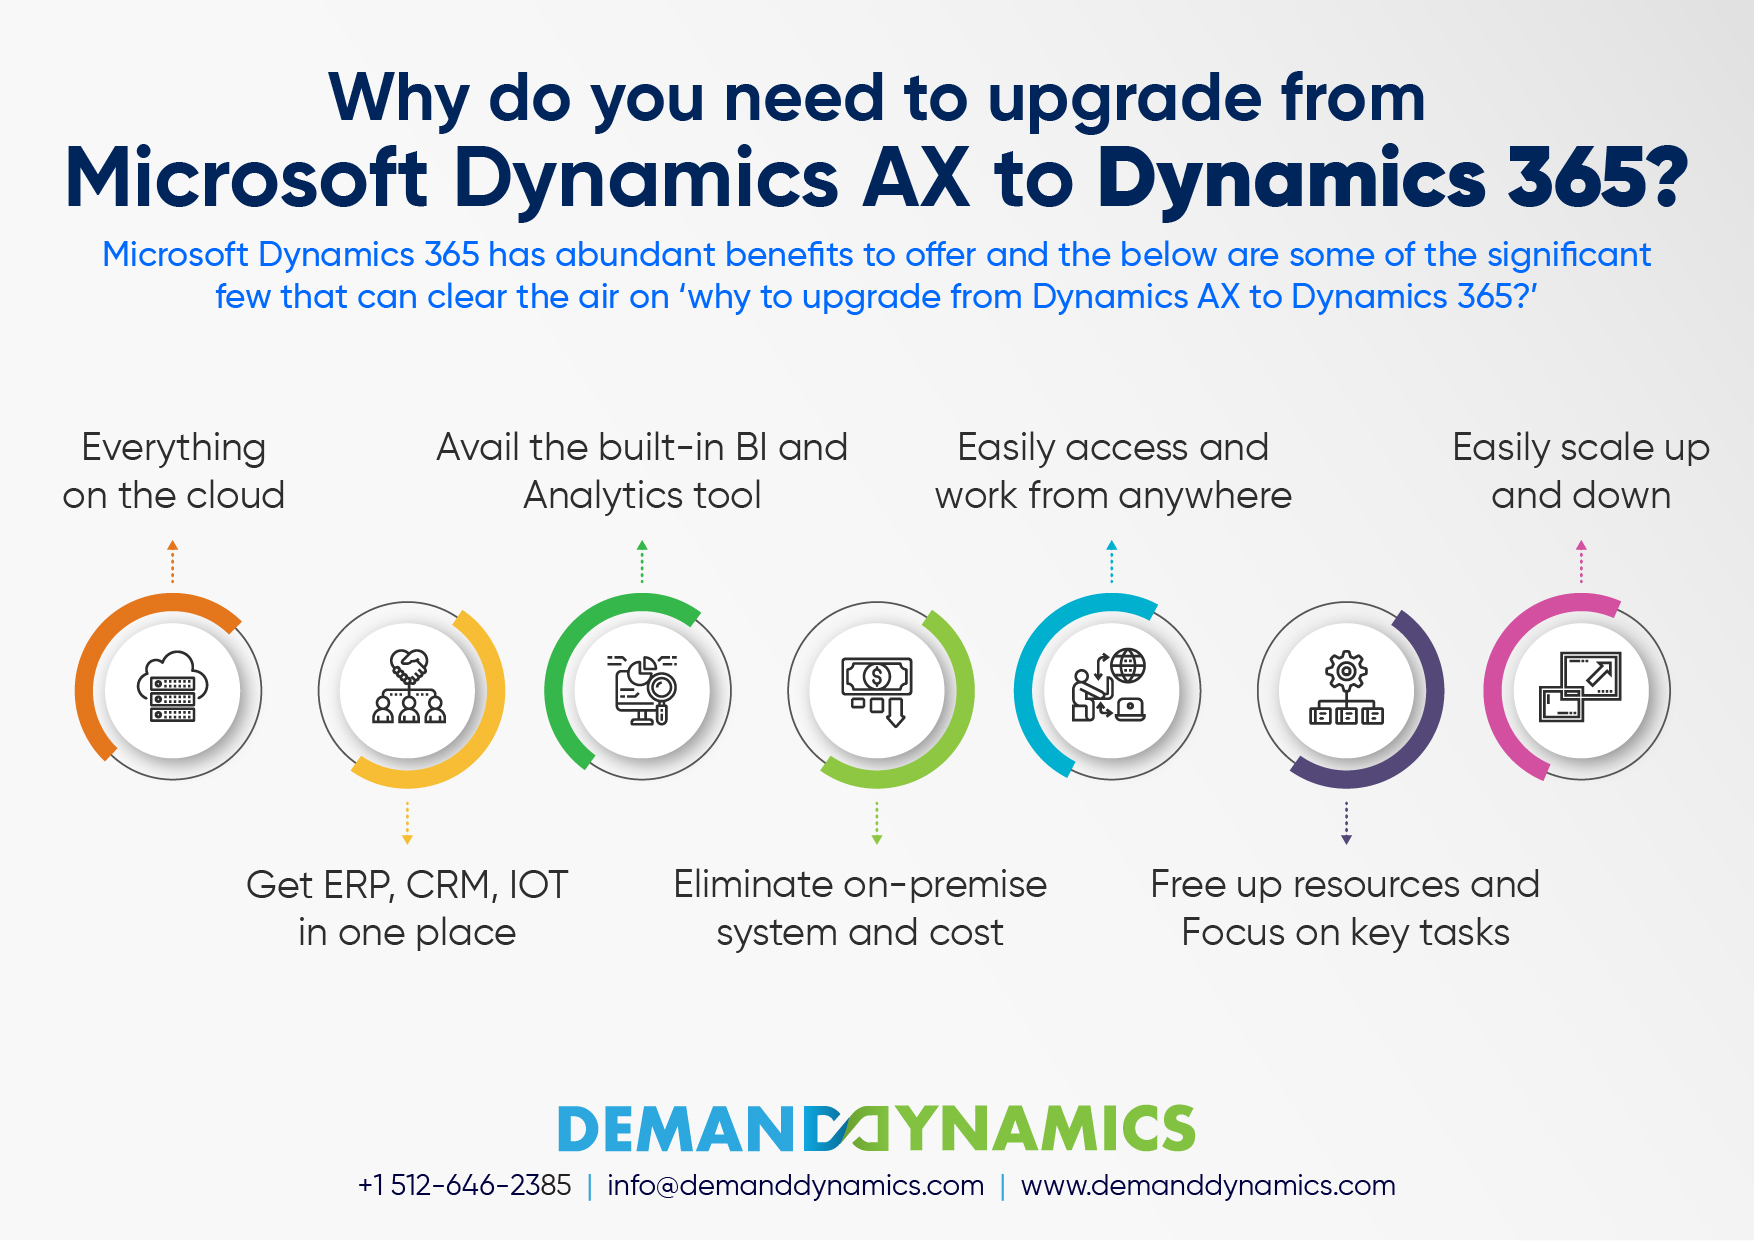 Upgrading from Dynamics AX to Dynamics 365